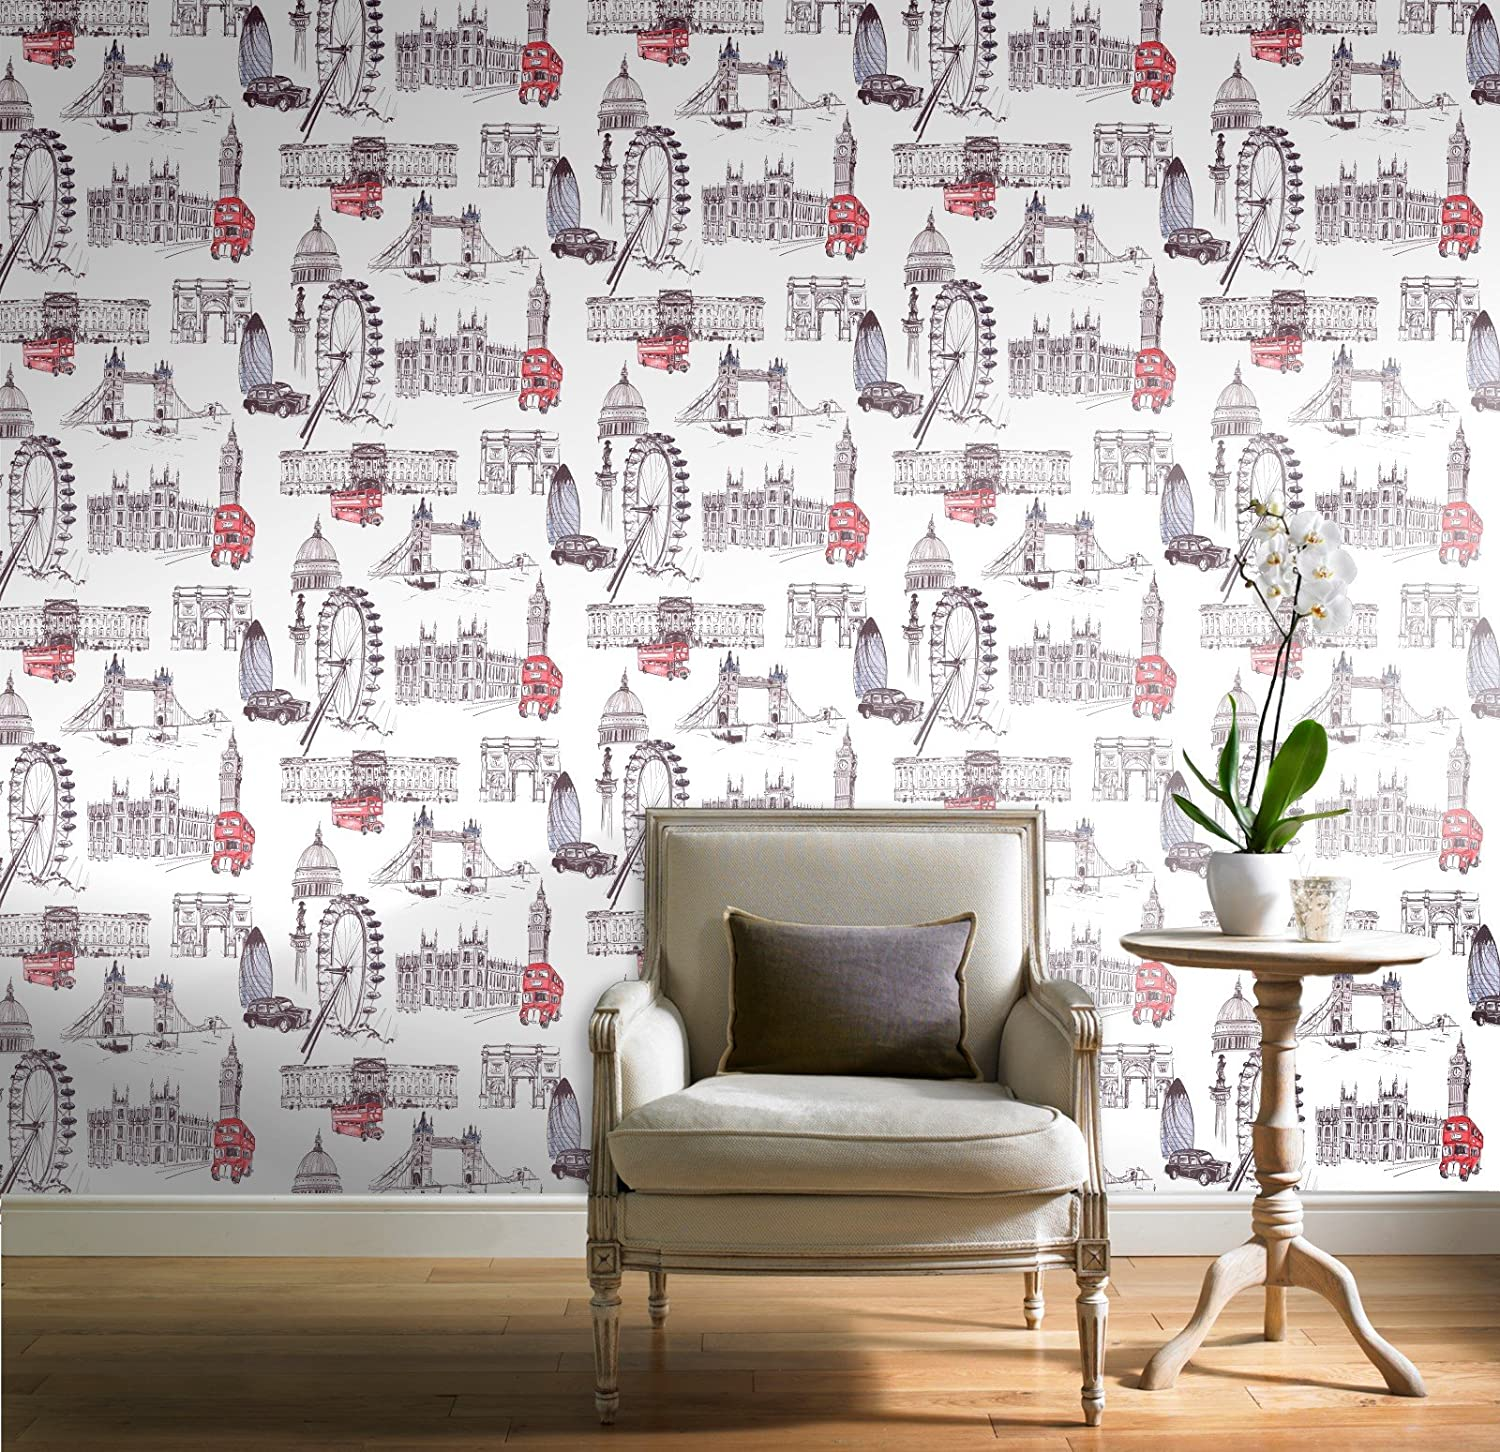 GranDeco Wallpaper Sightseeing POB 26 01 6 Amazoncouk DIY Tools